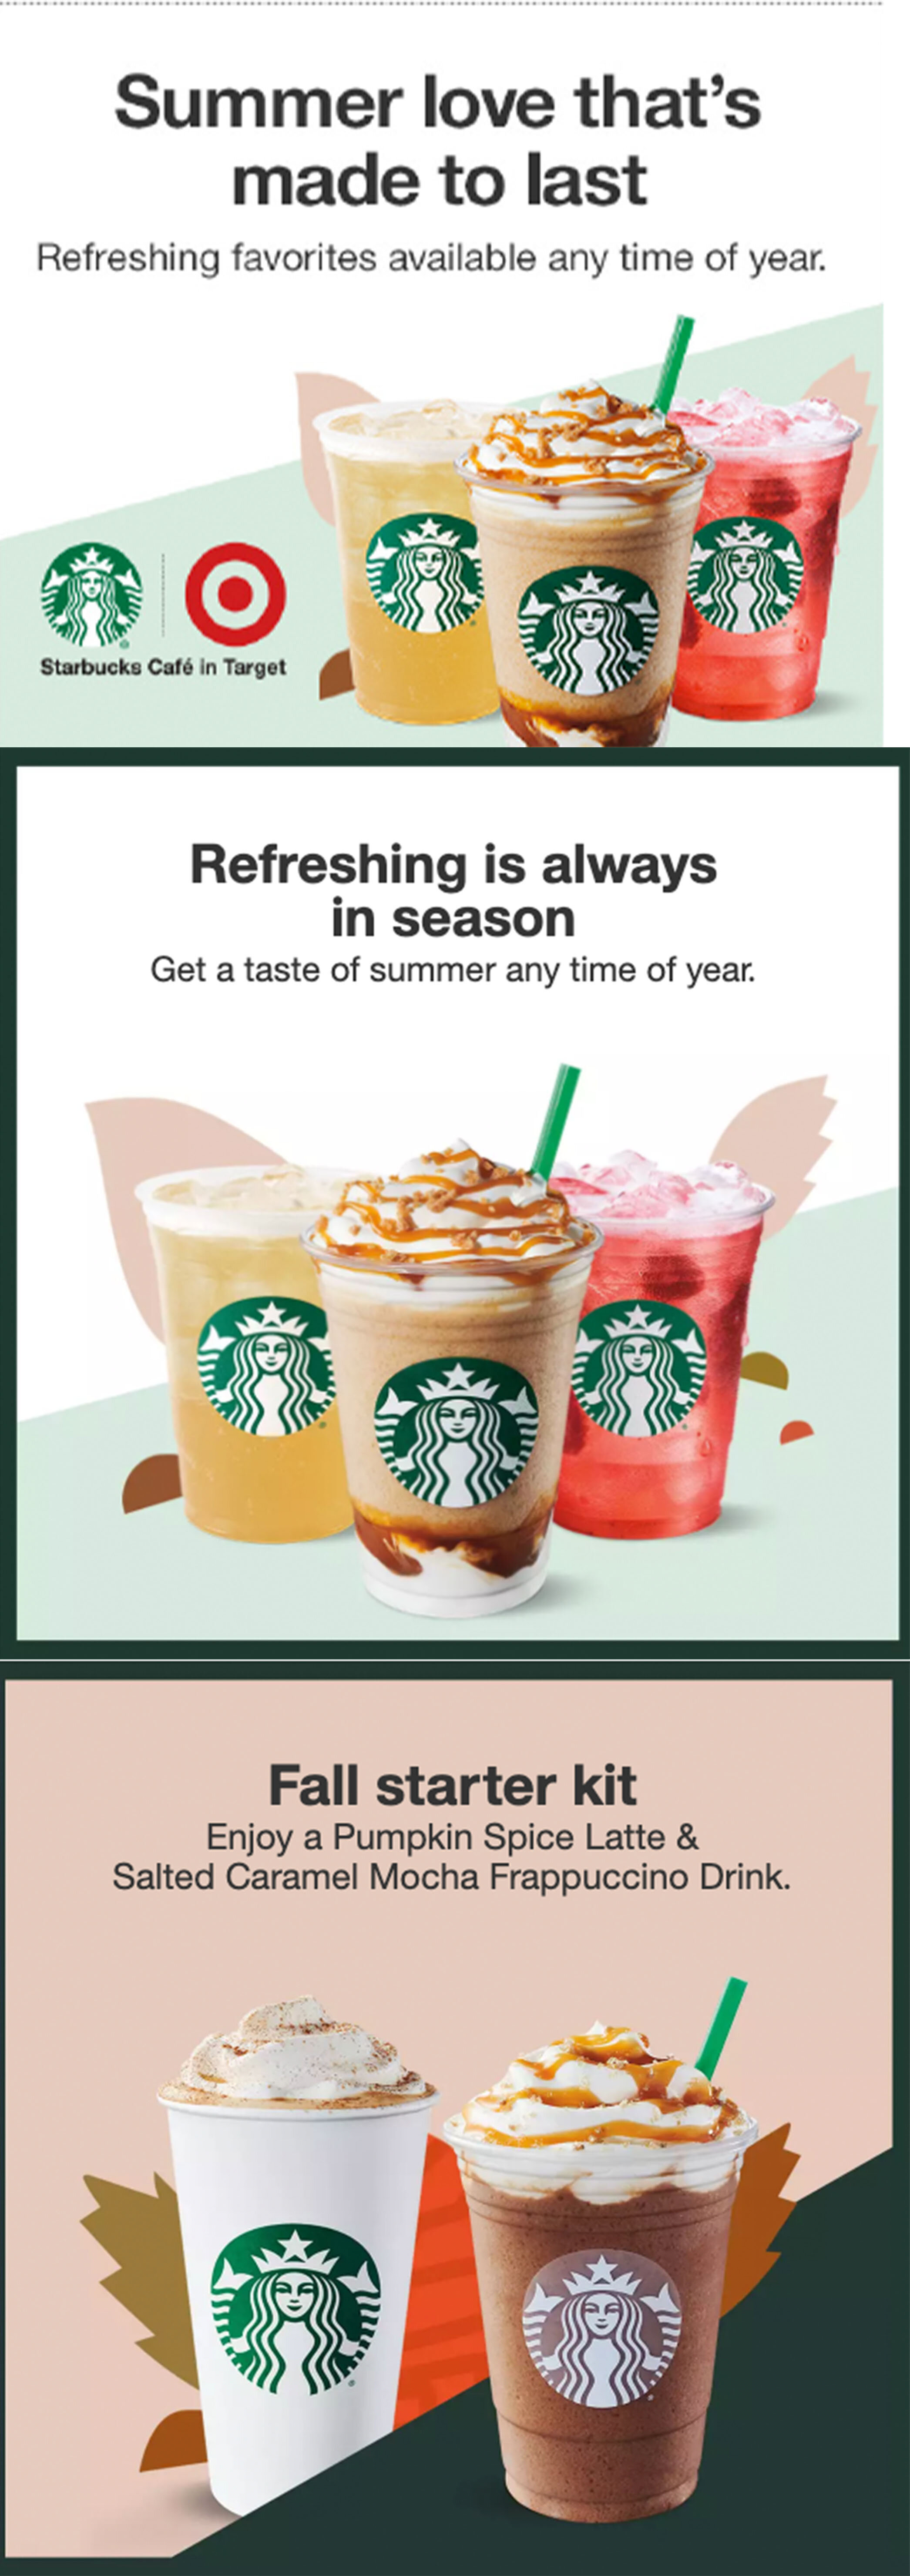 Created a wide variety of written copy for seasonal promotions on the brand page for Starbucks Cafes in Target stores.